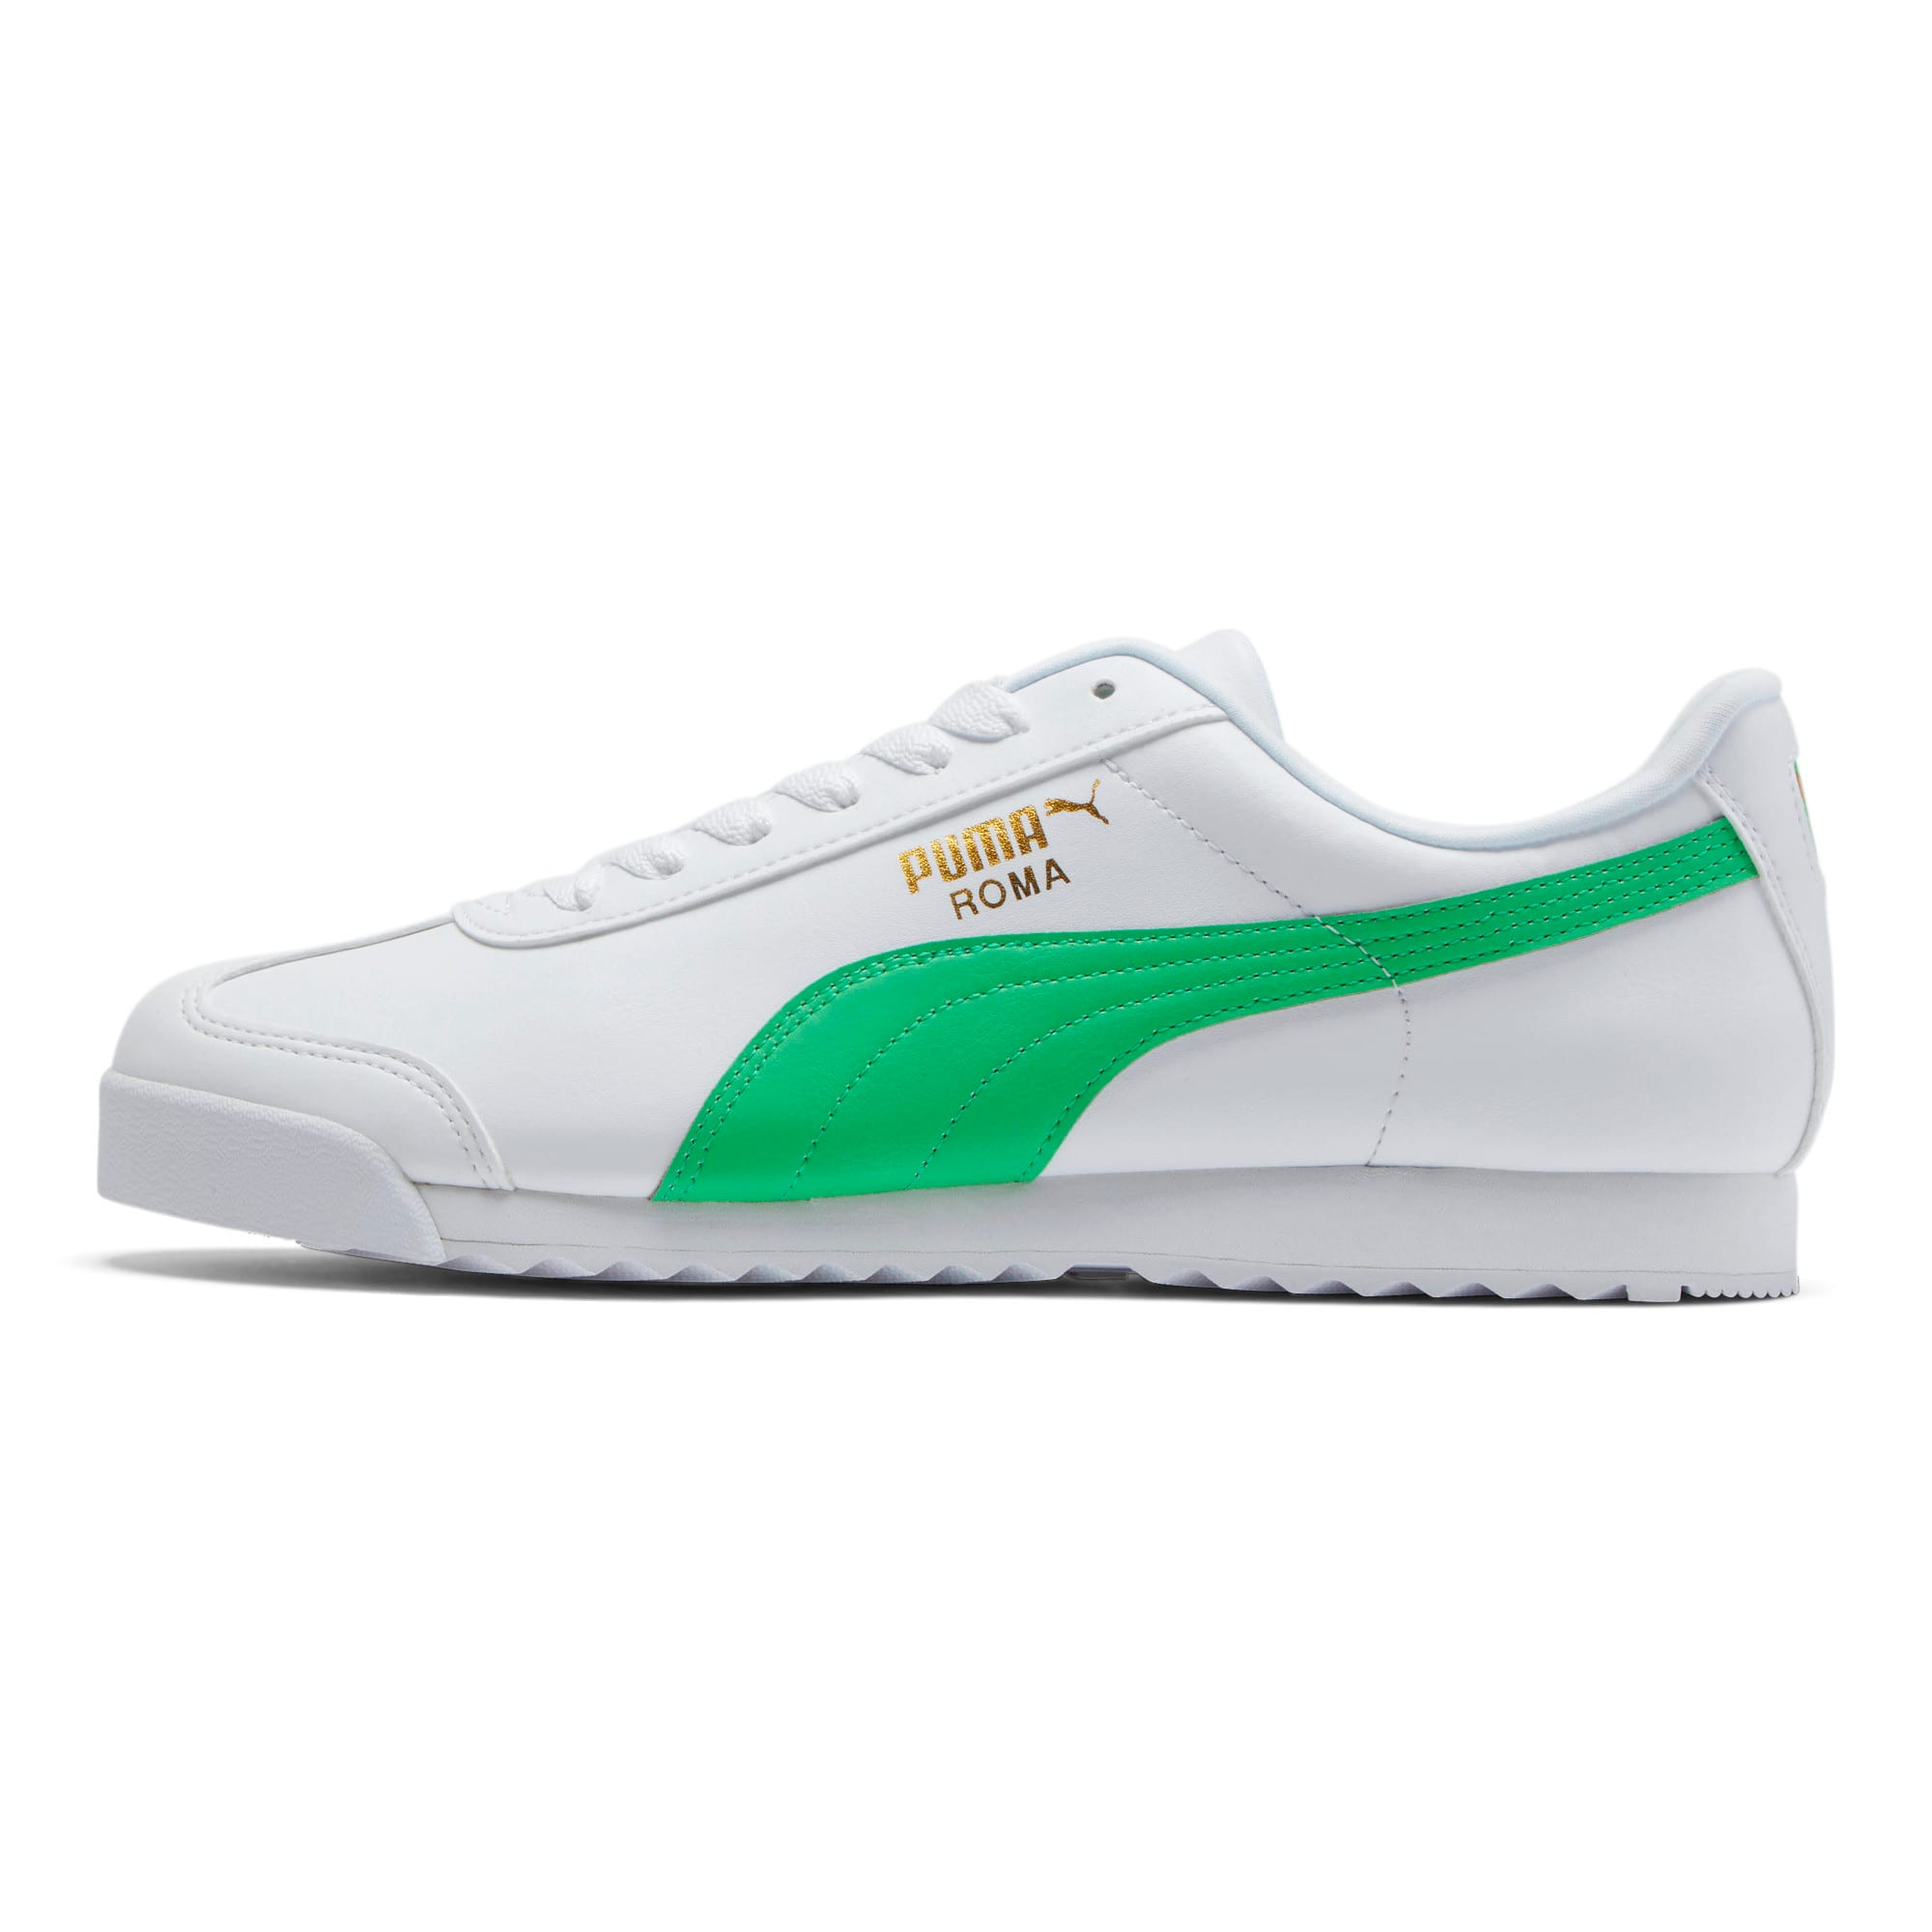 Miniatura 1 de Zapatos deportivos Roma Basic +, Puma White-Irish Green, mediano